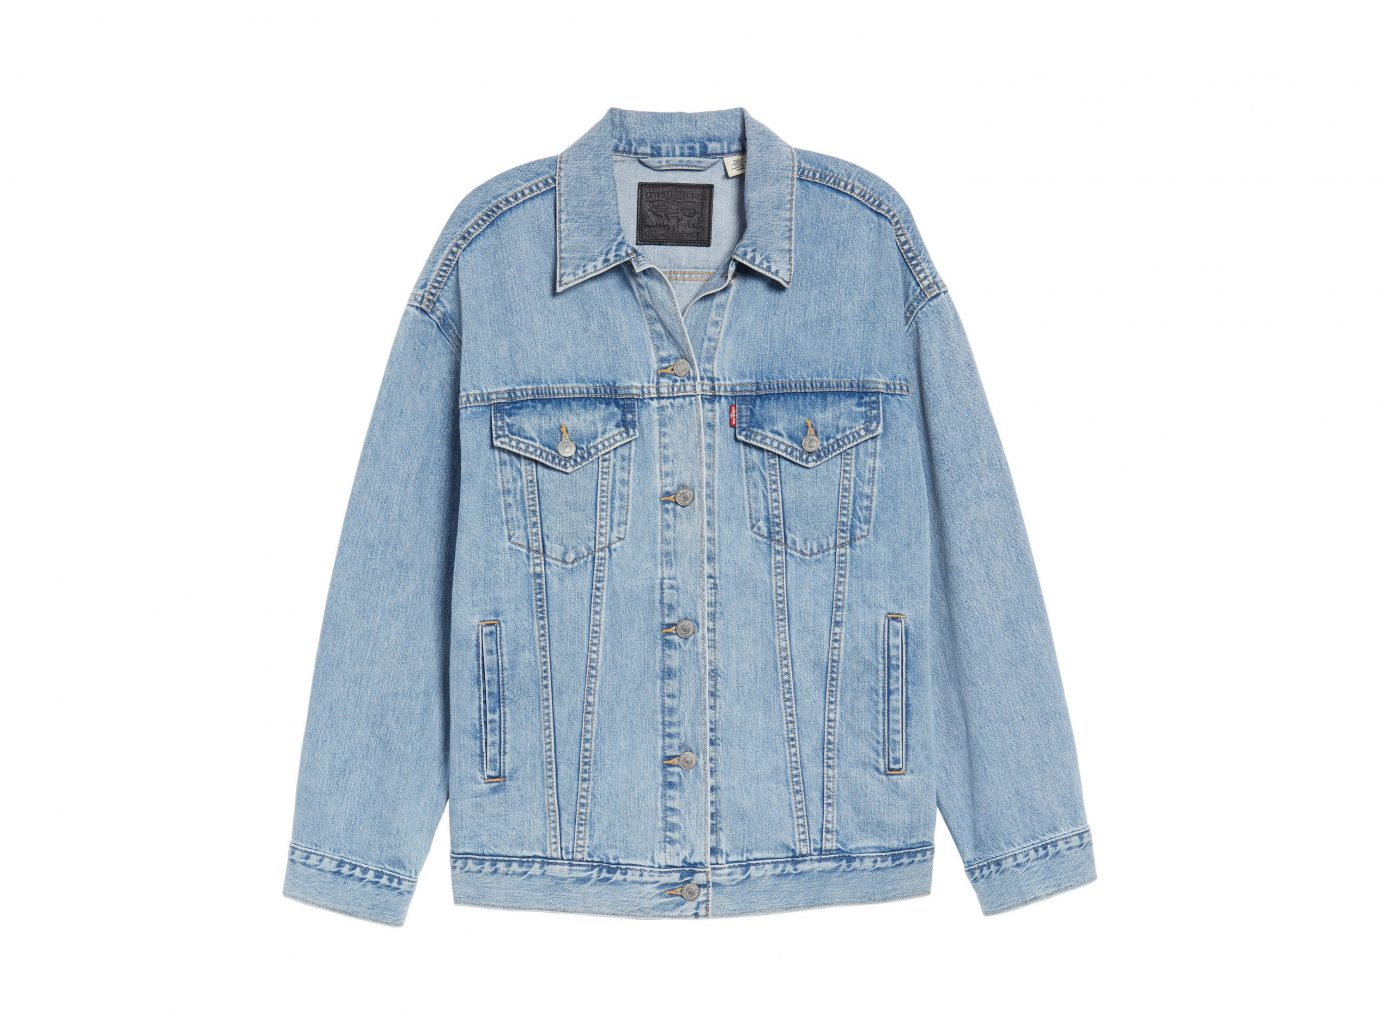 Packing Tips Spring Travel Style + Design Travel Shop denim sleeve button textile jacket product shirt jeans